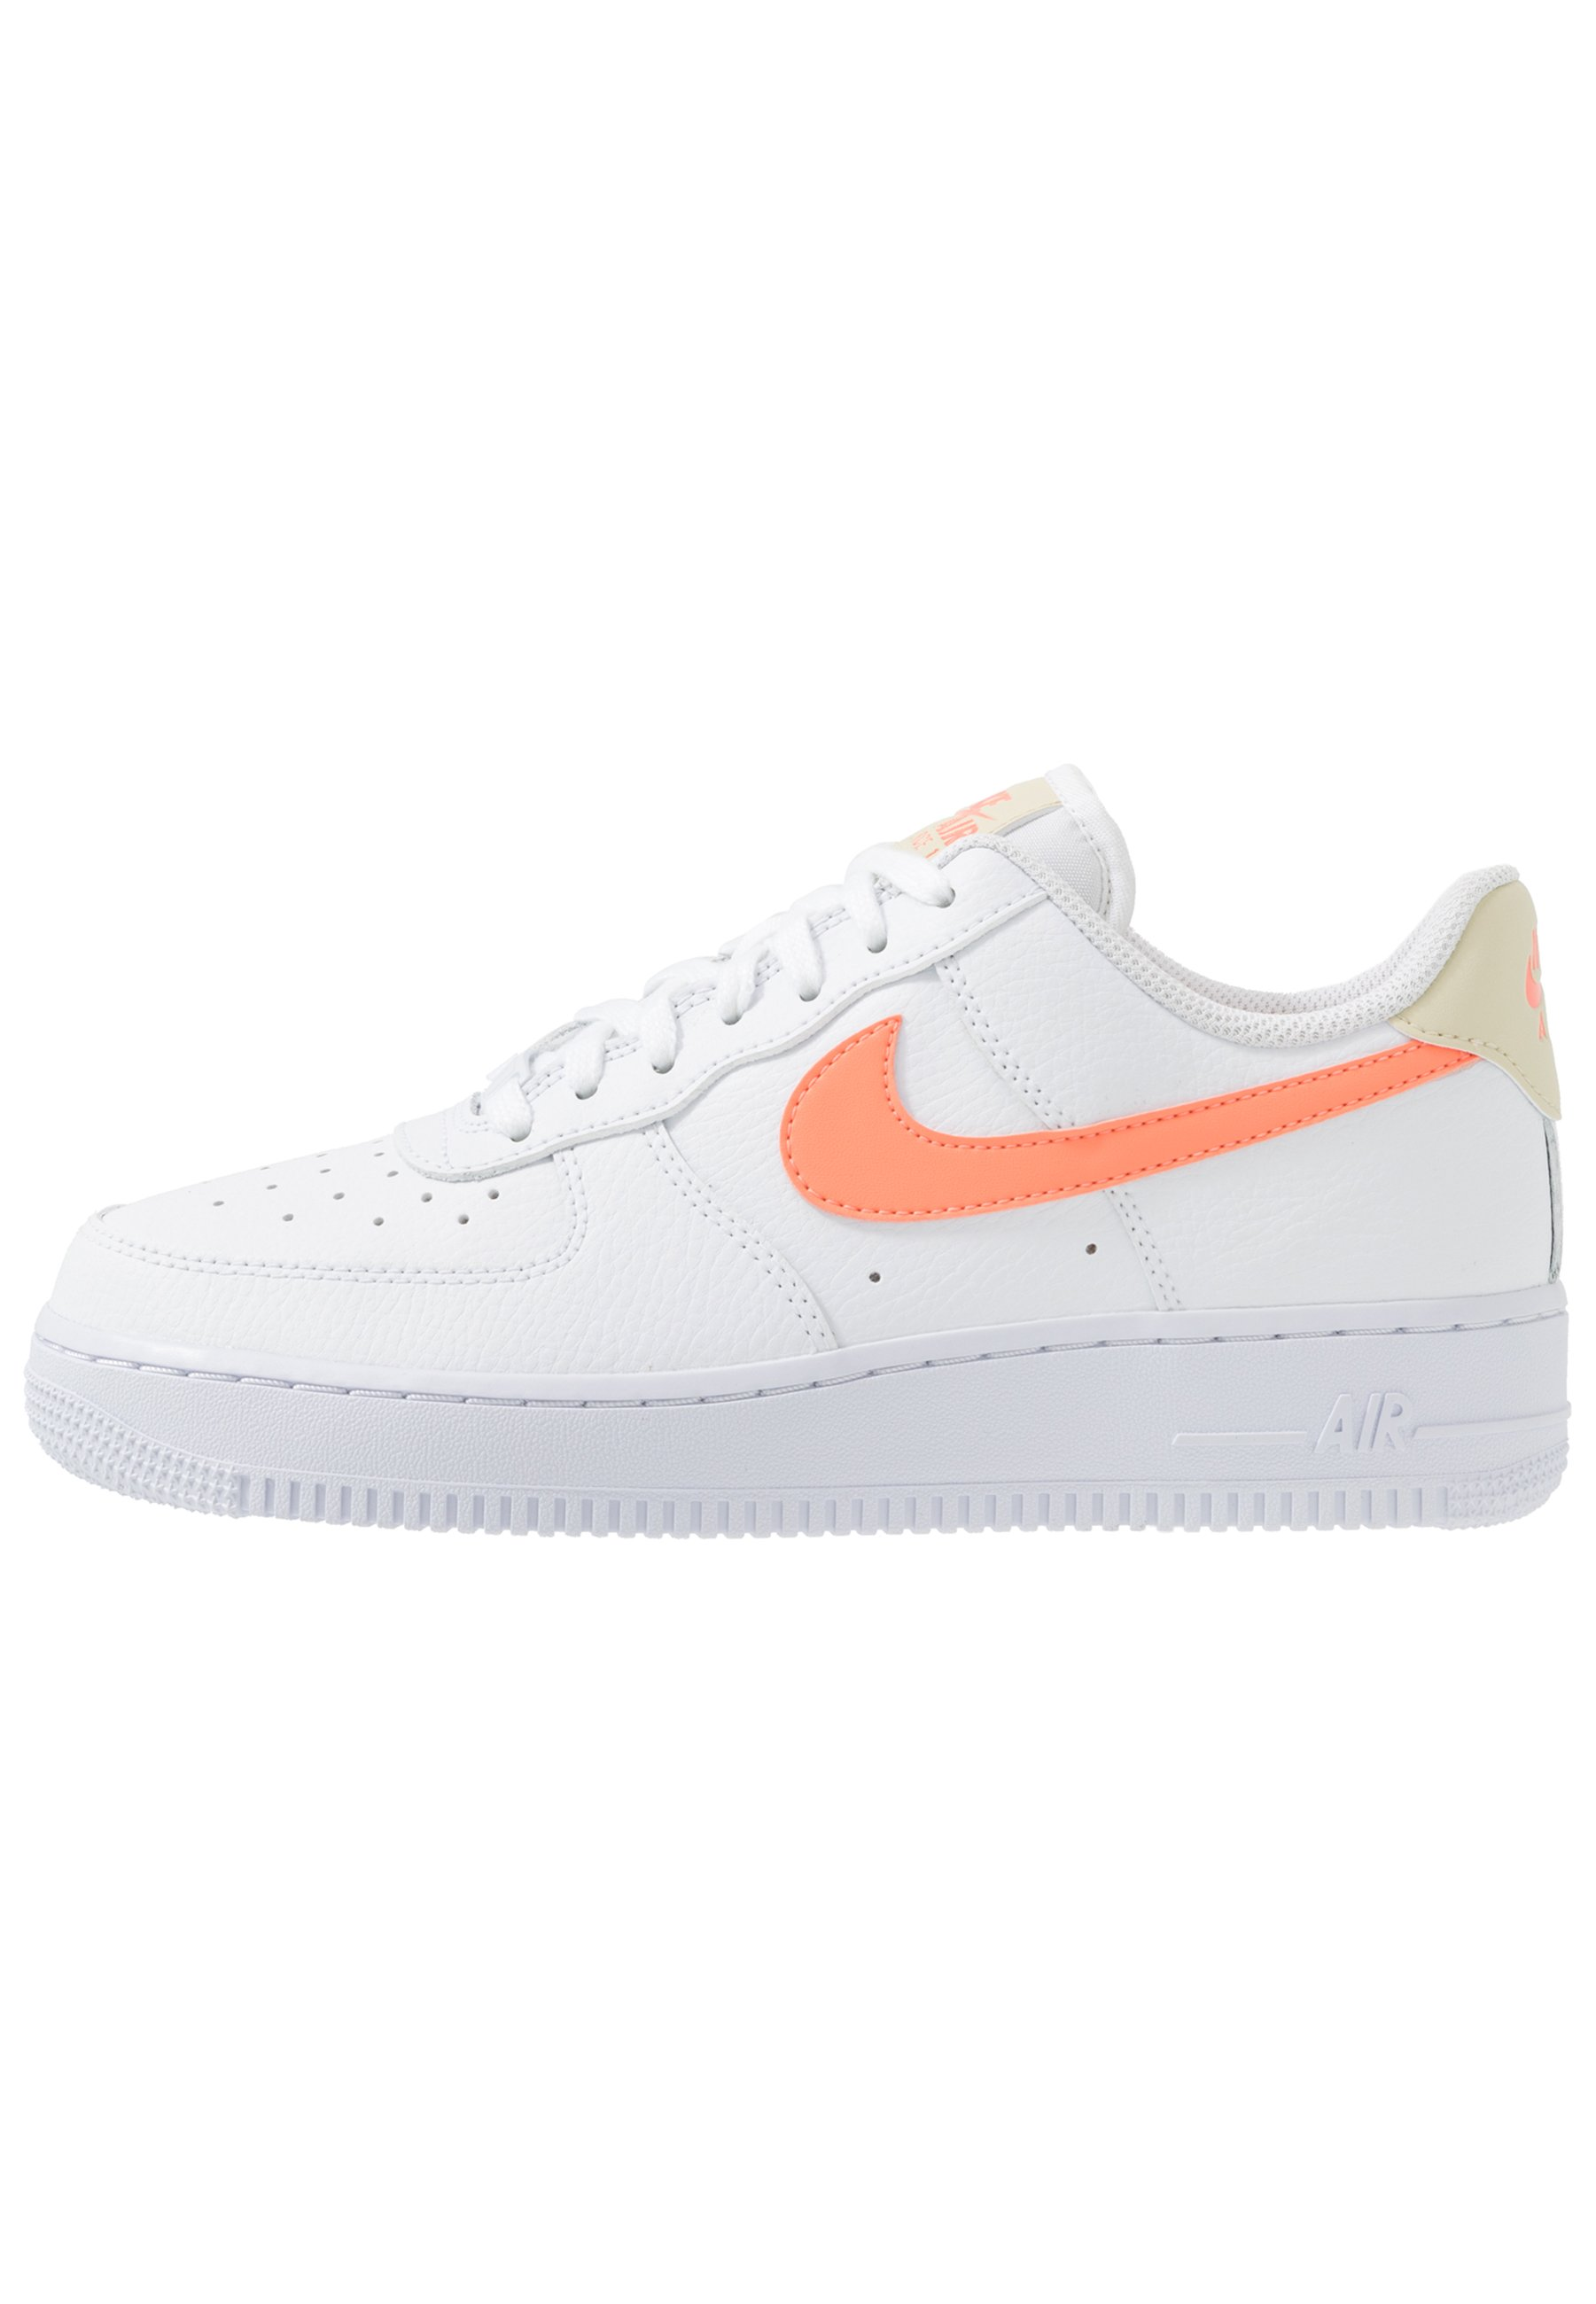 AIR FORCE 1 Baskets basses whiteatomic pinkfossil